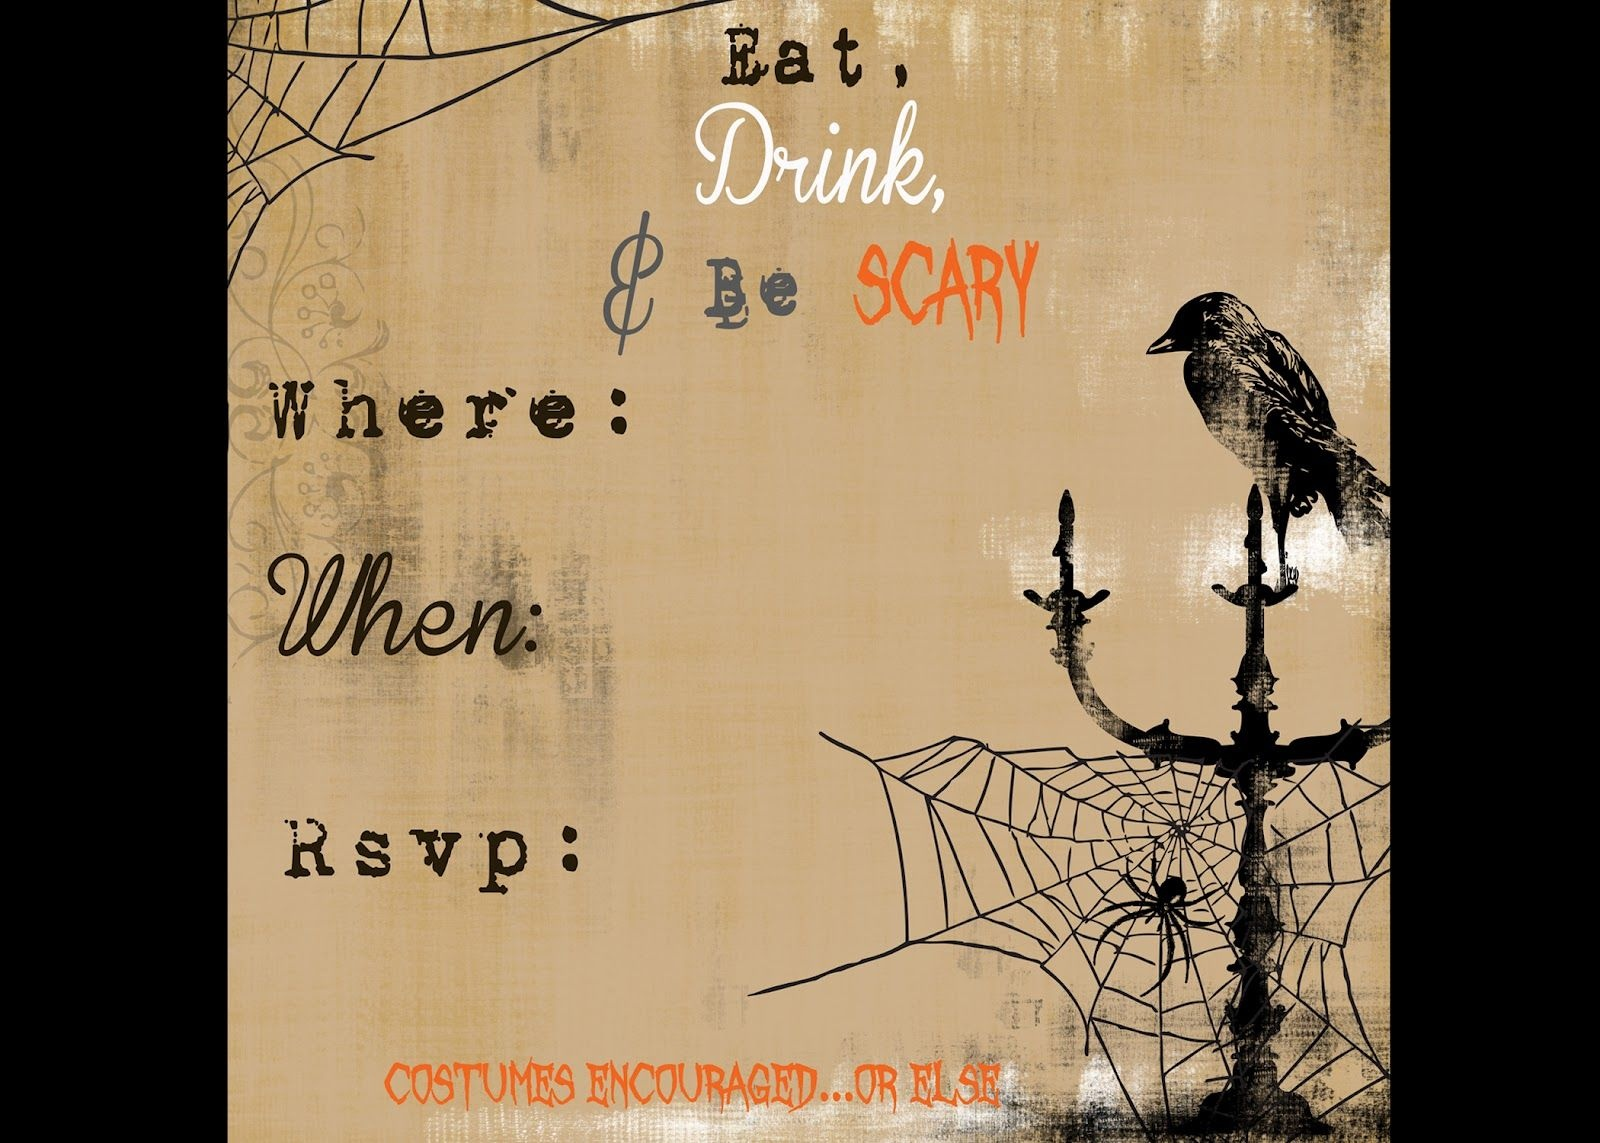 Scary Halloween Invitations Printable Free | Secrets Of A Modern - Free Printable Halloween Invitations For Adults